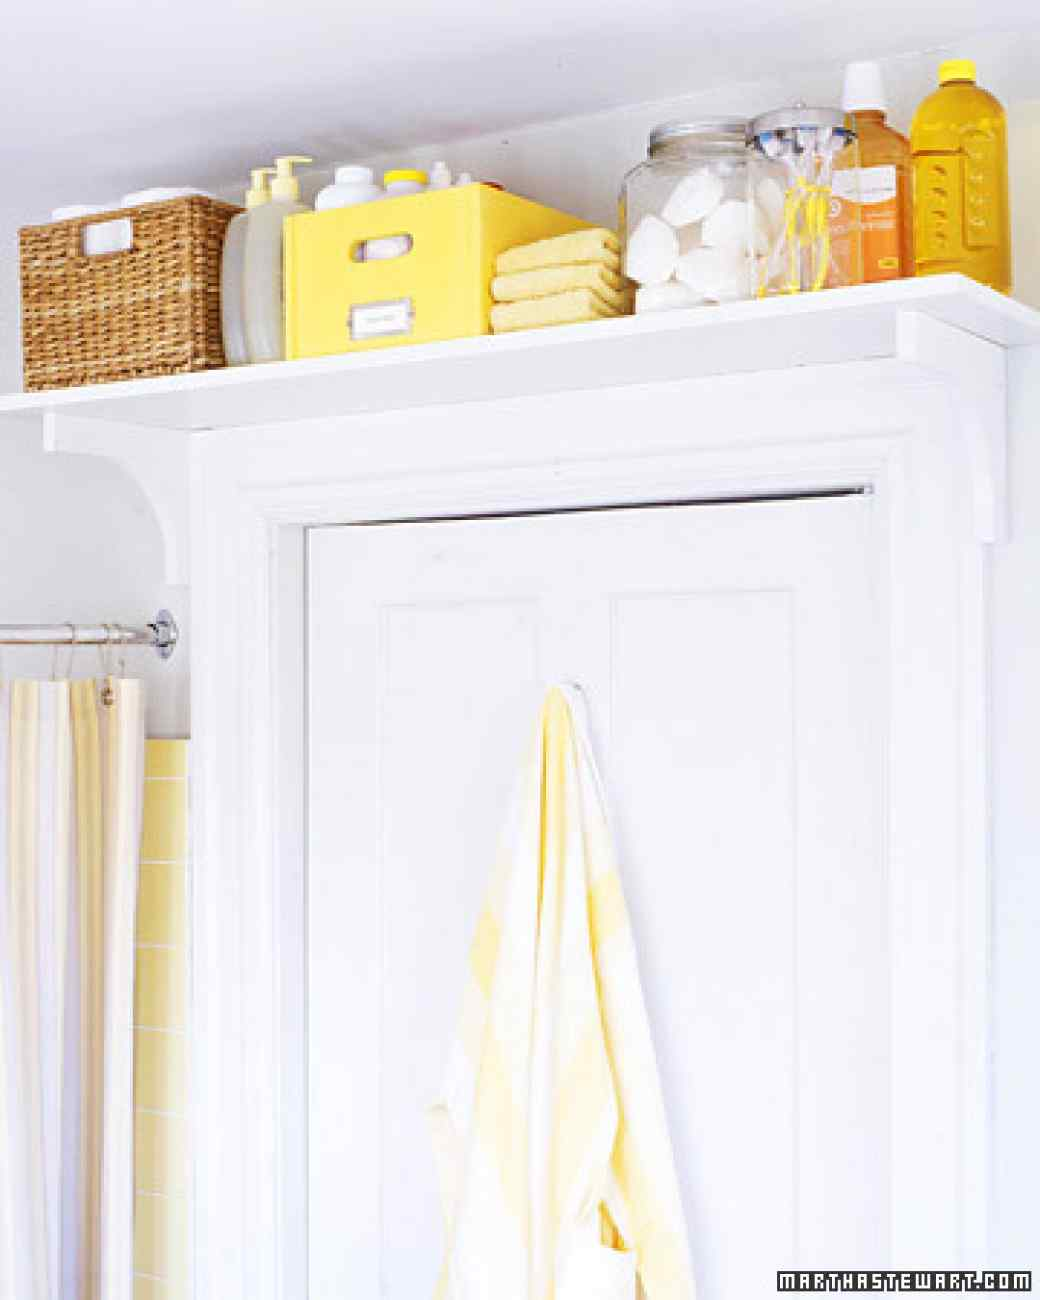 install a shelf on top of your bathroom door to store extra grooming and personal hygiene products